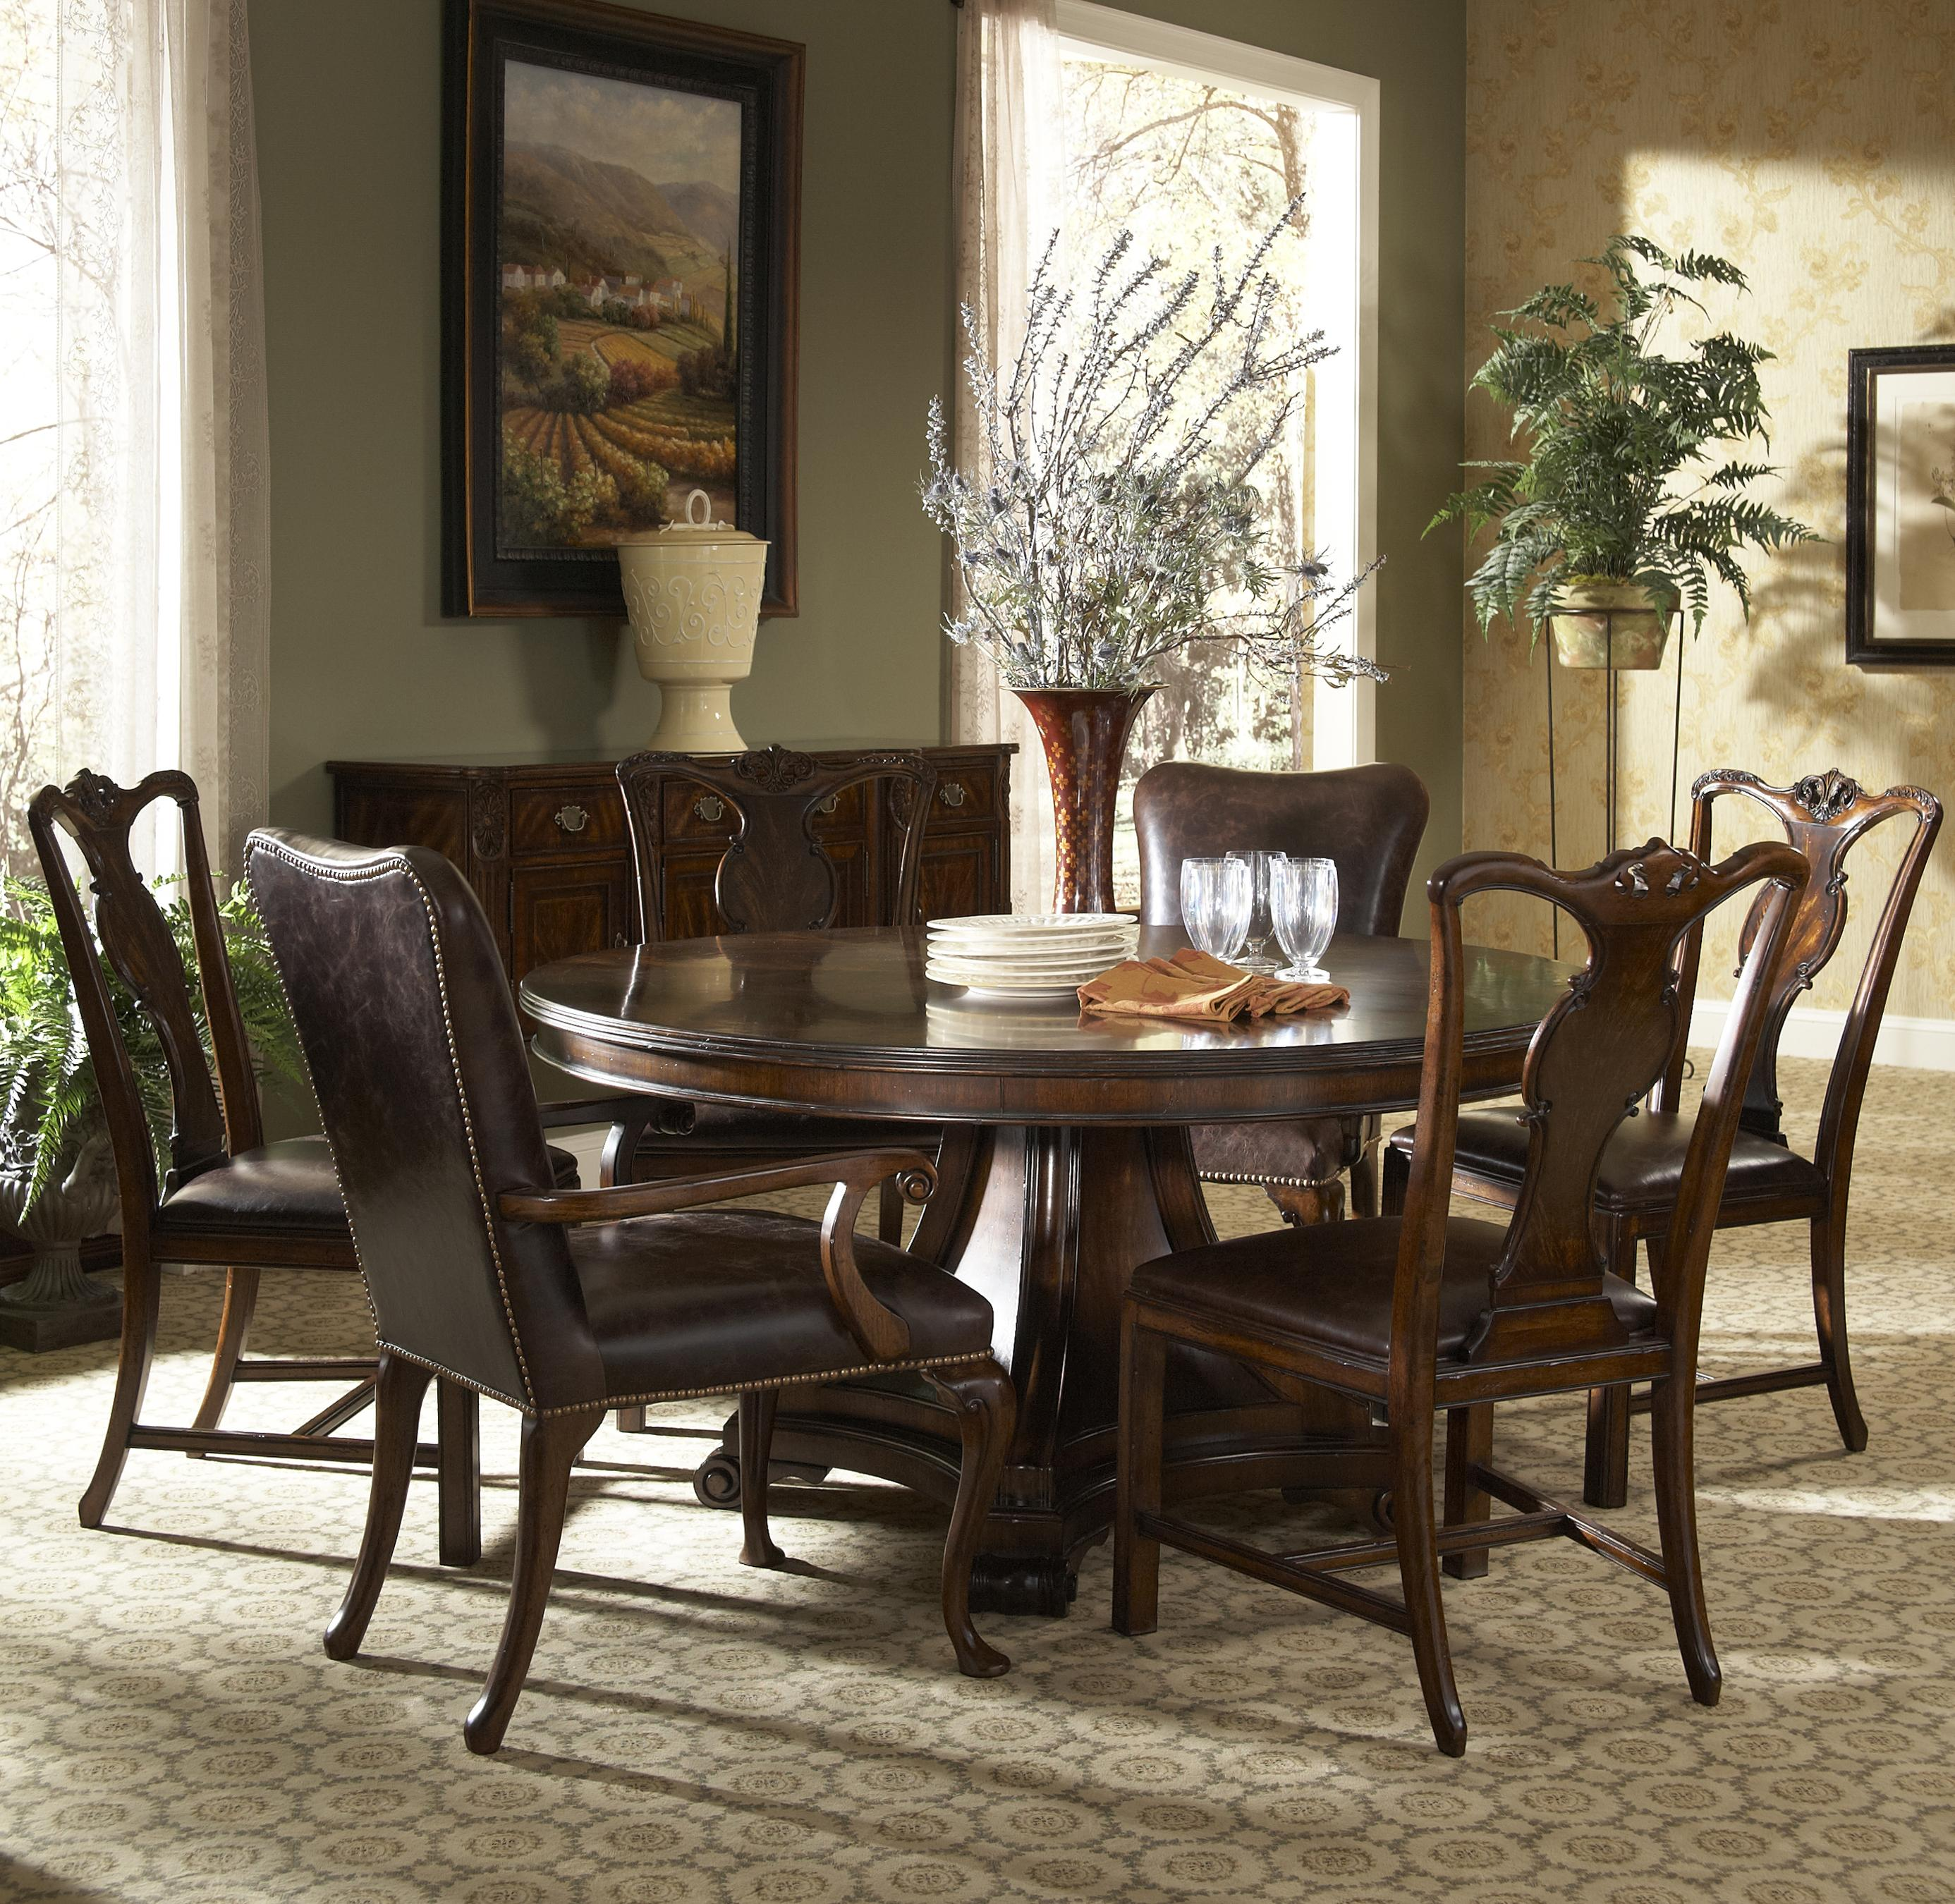 7 Piece Dining Table and Chairs Set & 7 Piece Round Dining Table with Splat Back Dining Side Chairs and ...